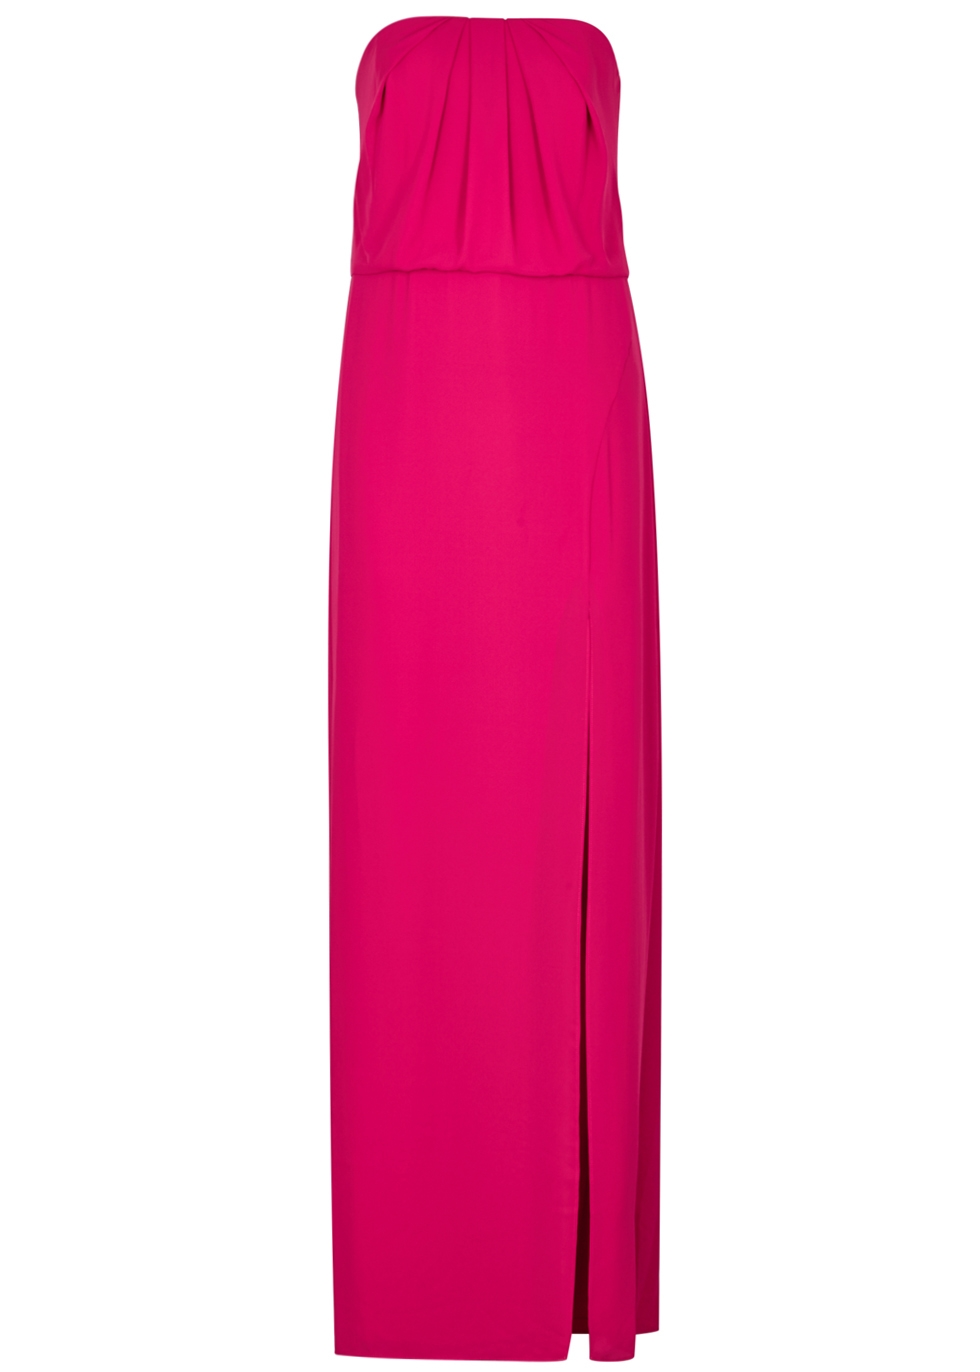 PINK GEORGETTE GOWN